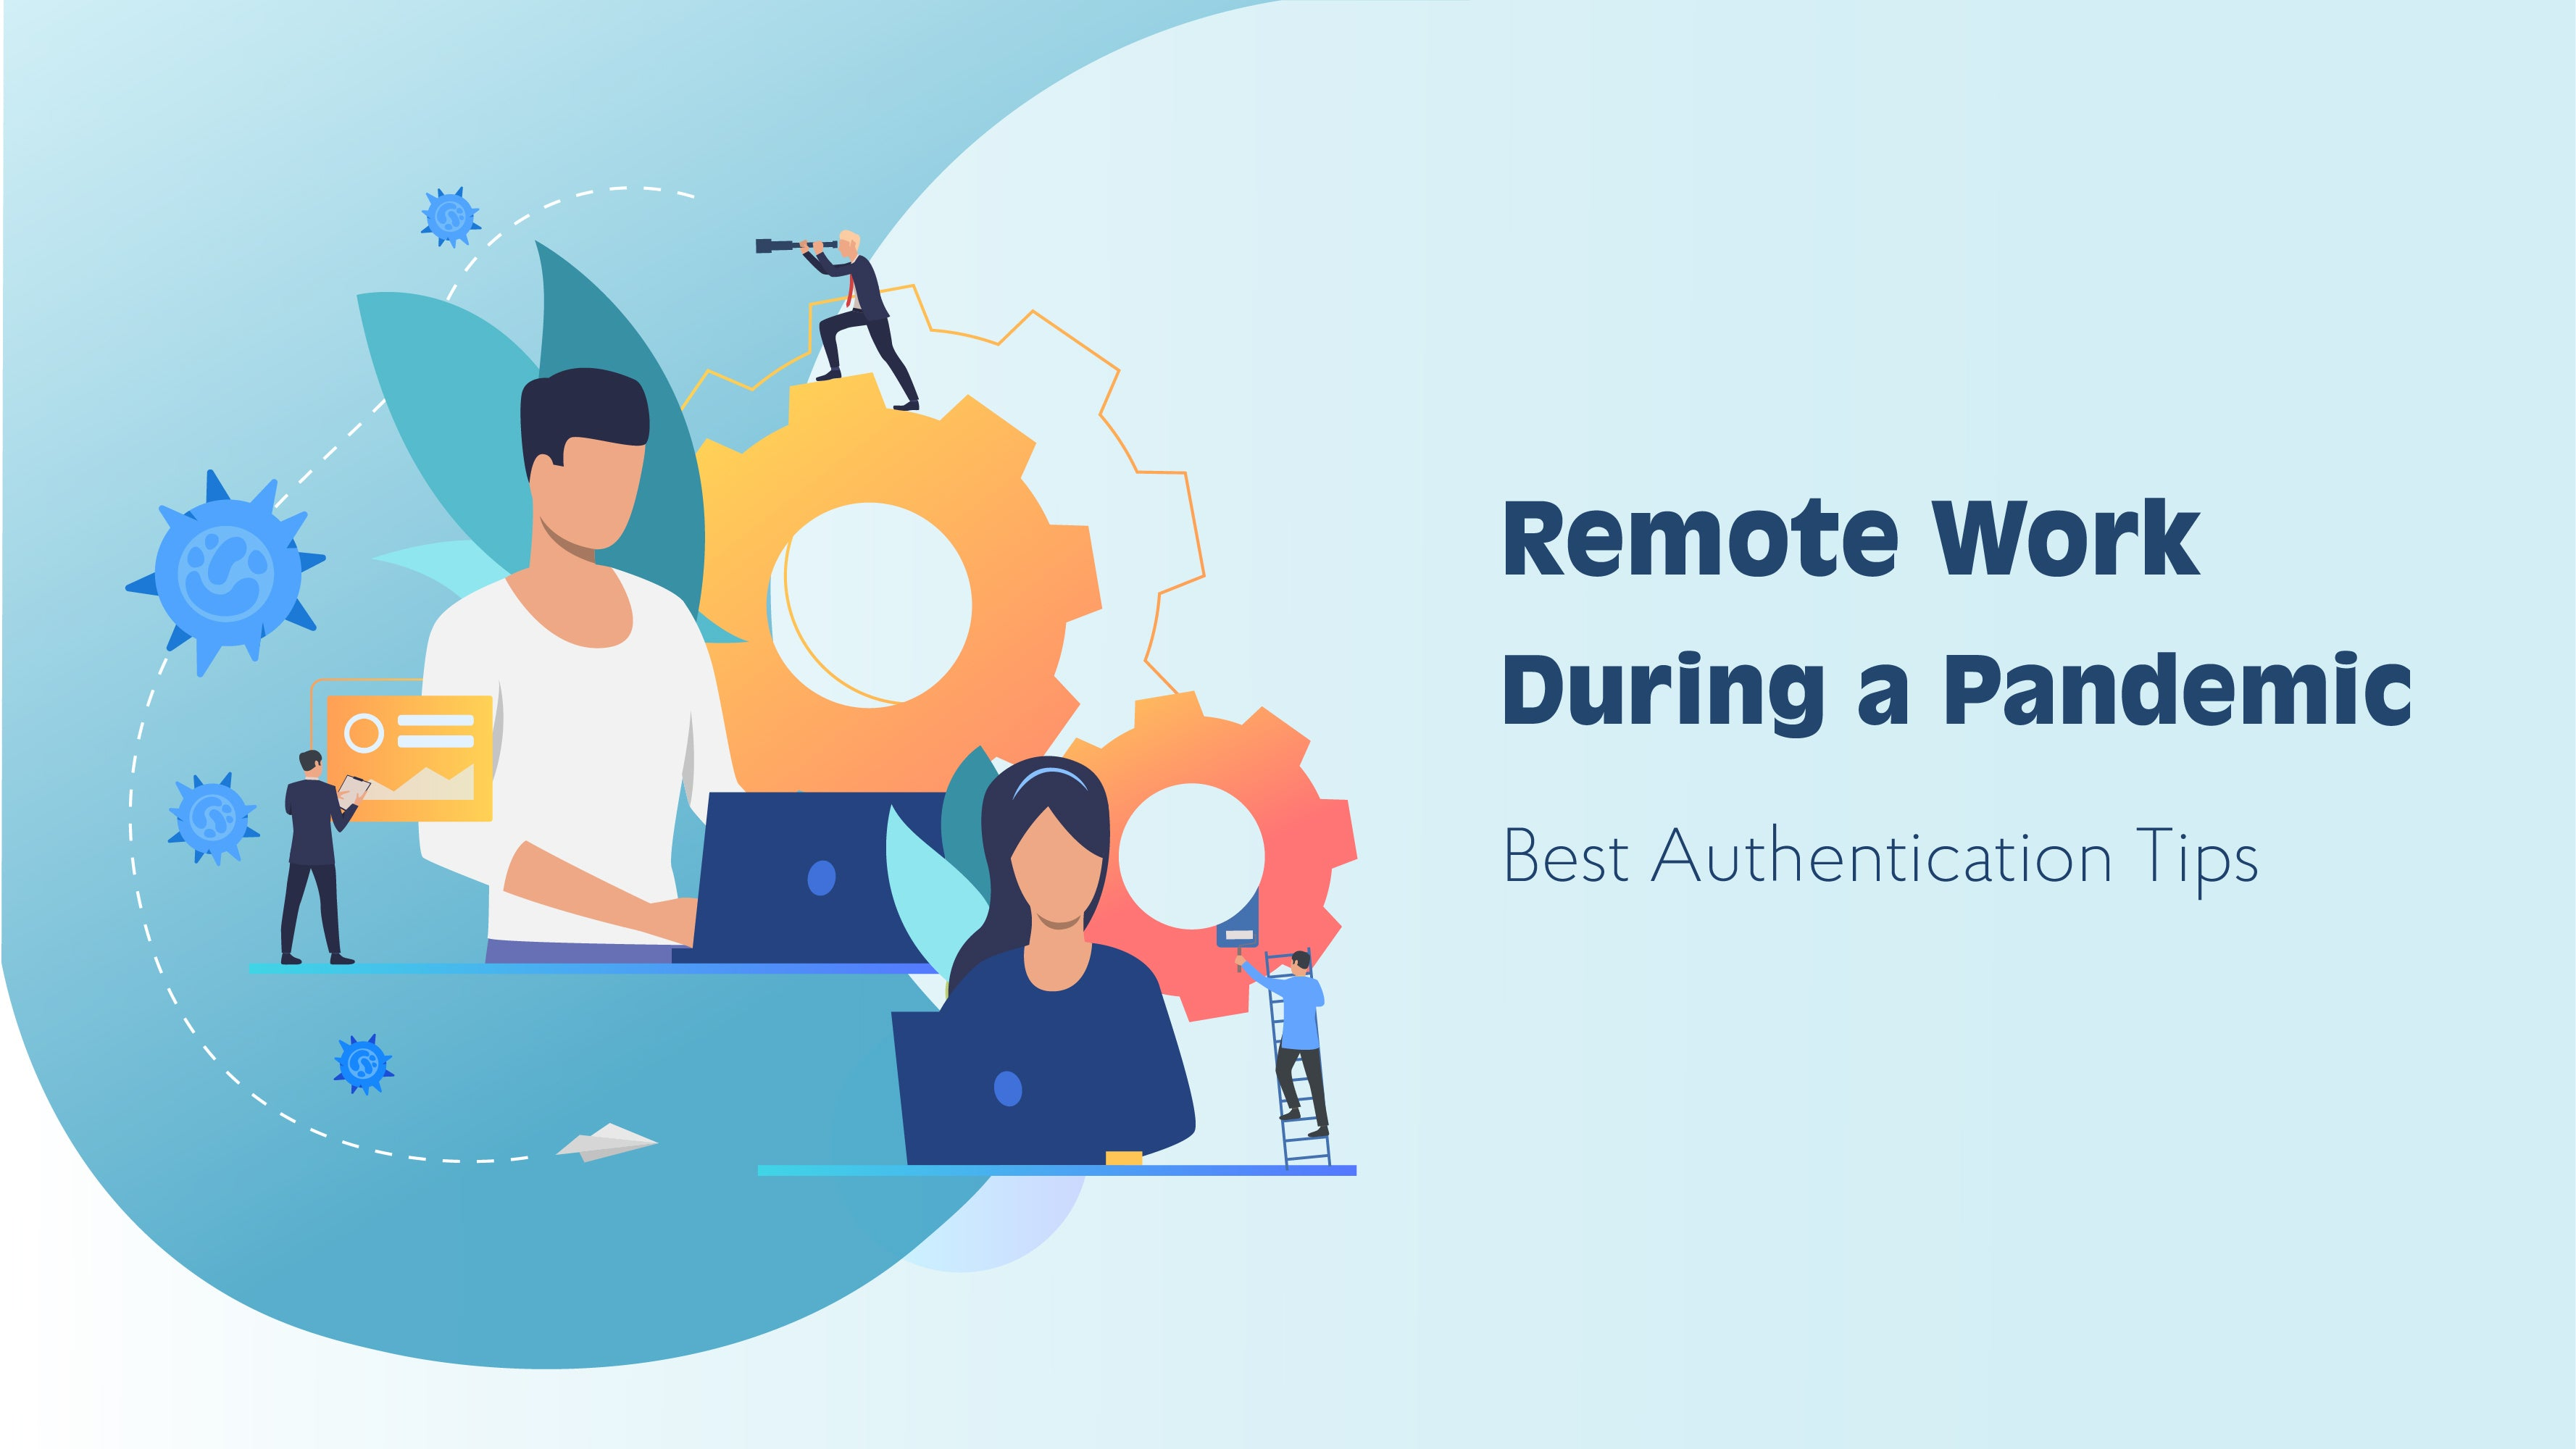 Secure remote work during COVID-19